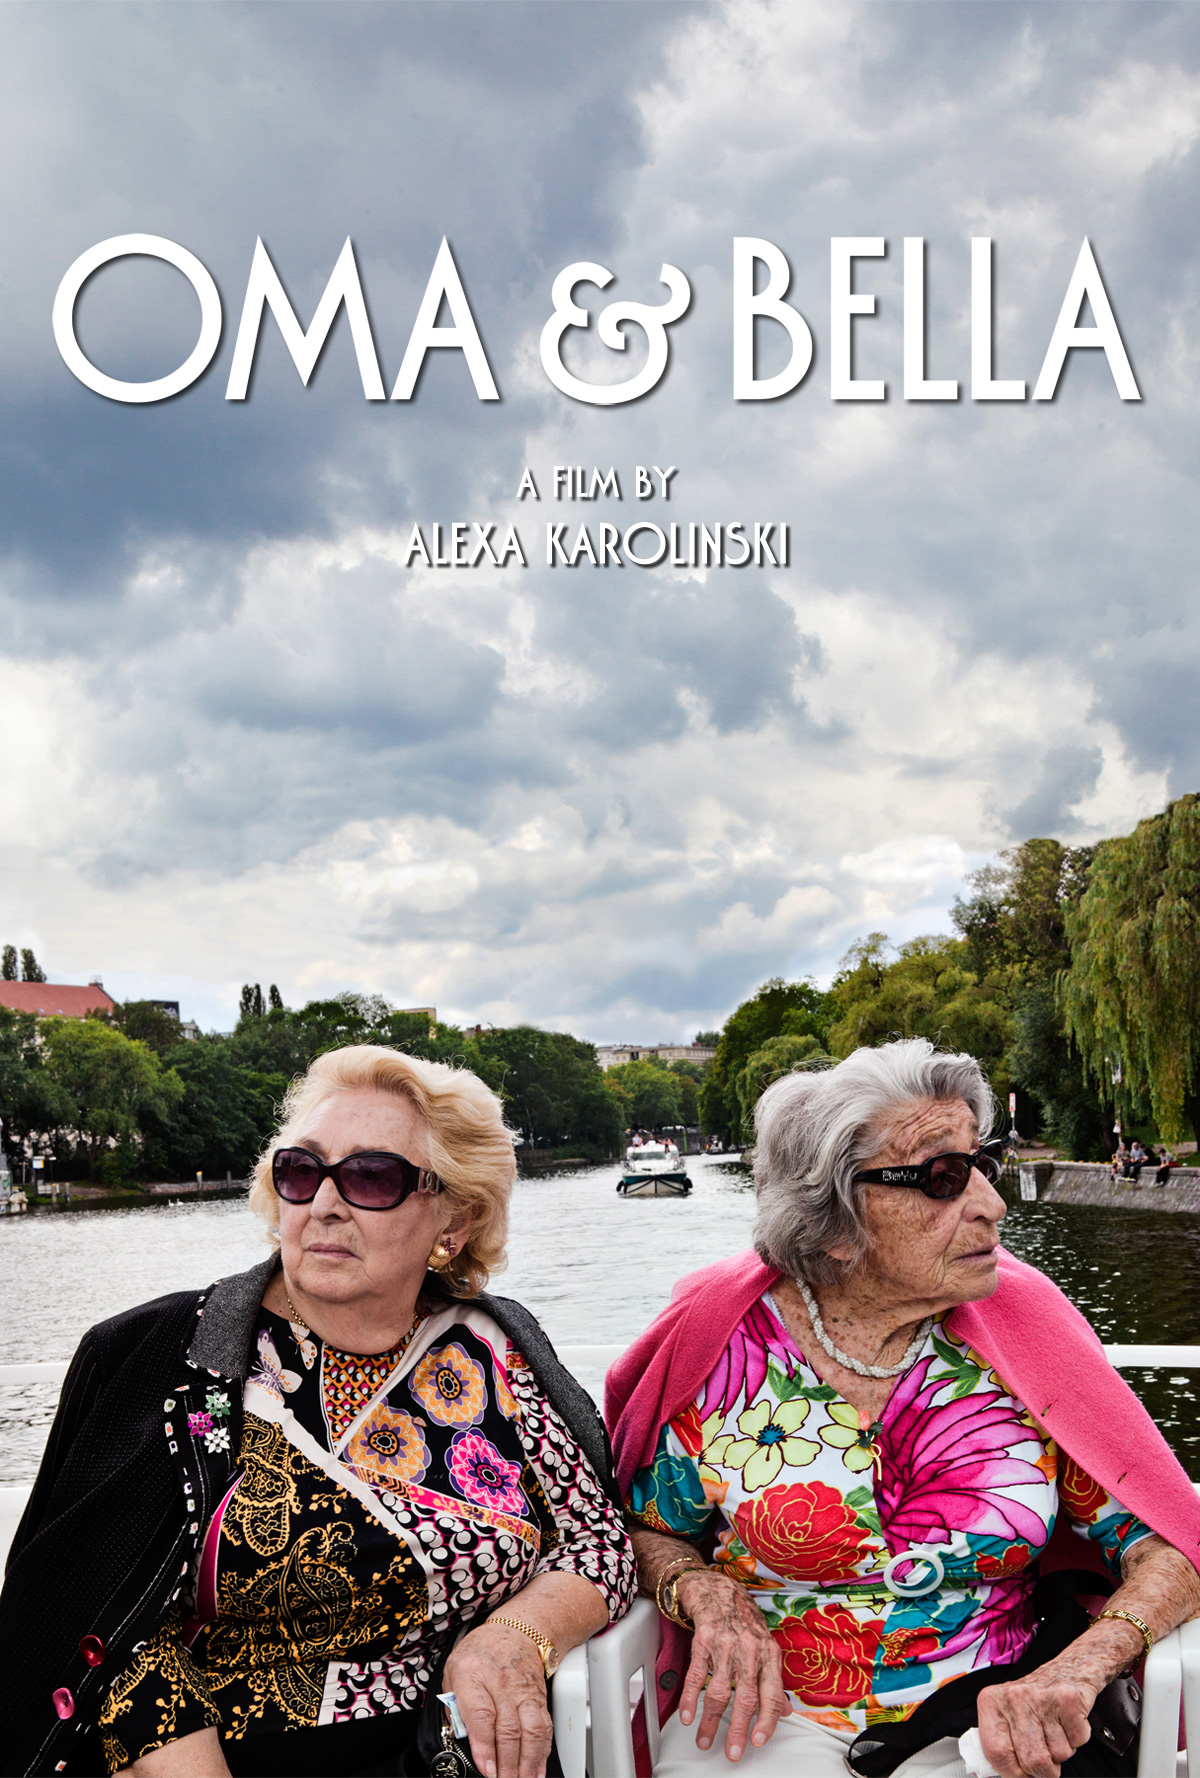 Oma & Bella